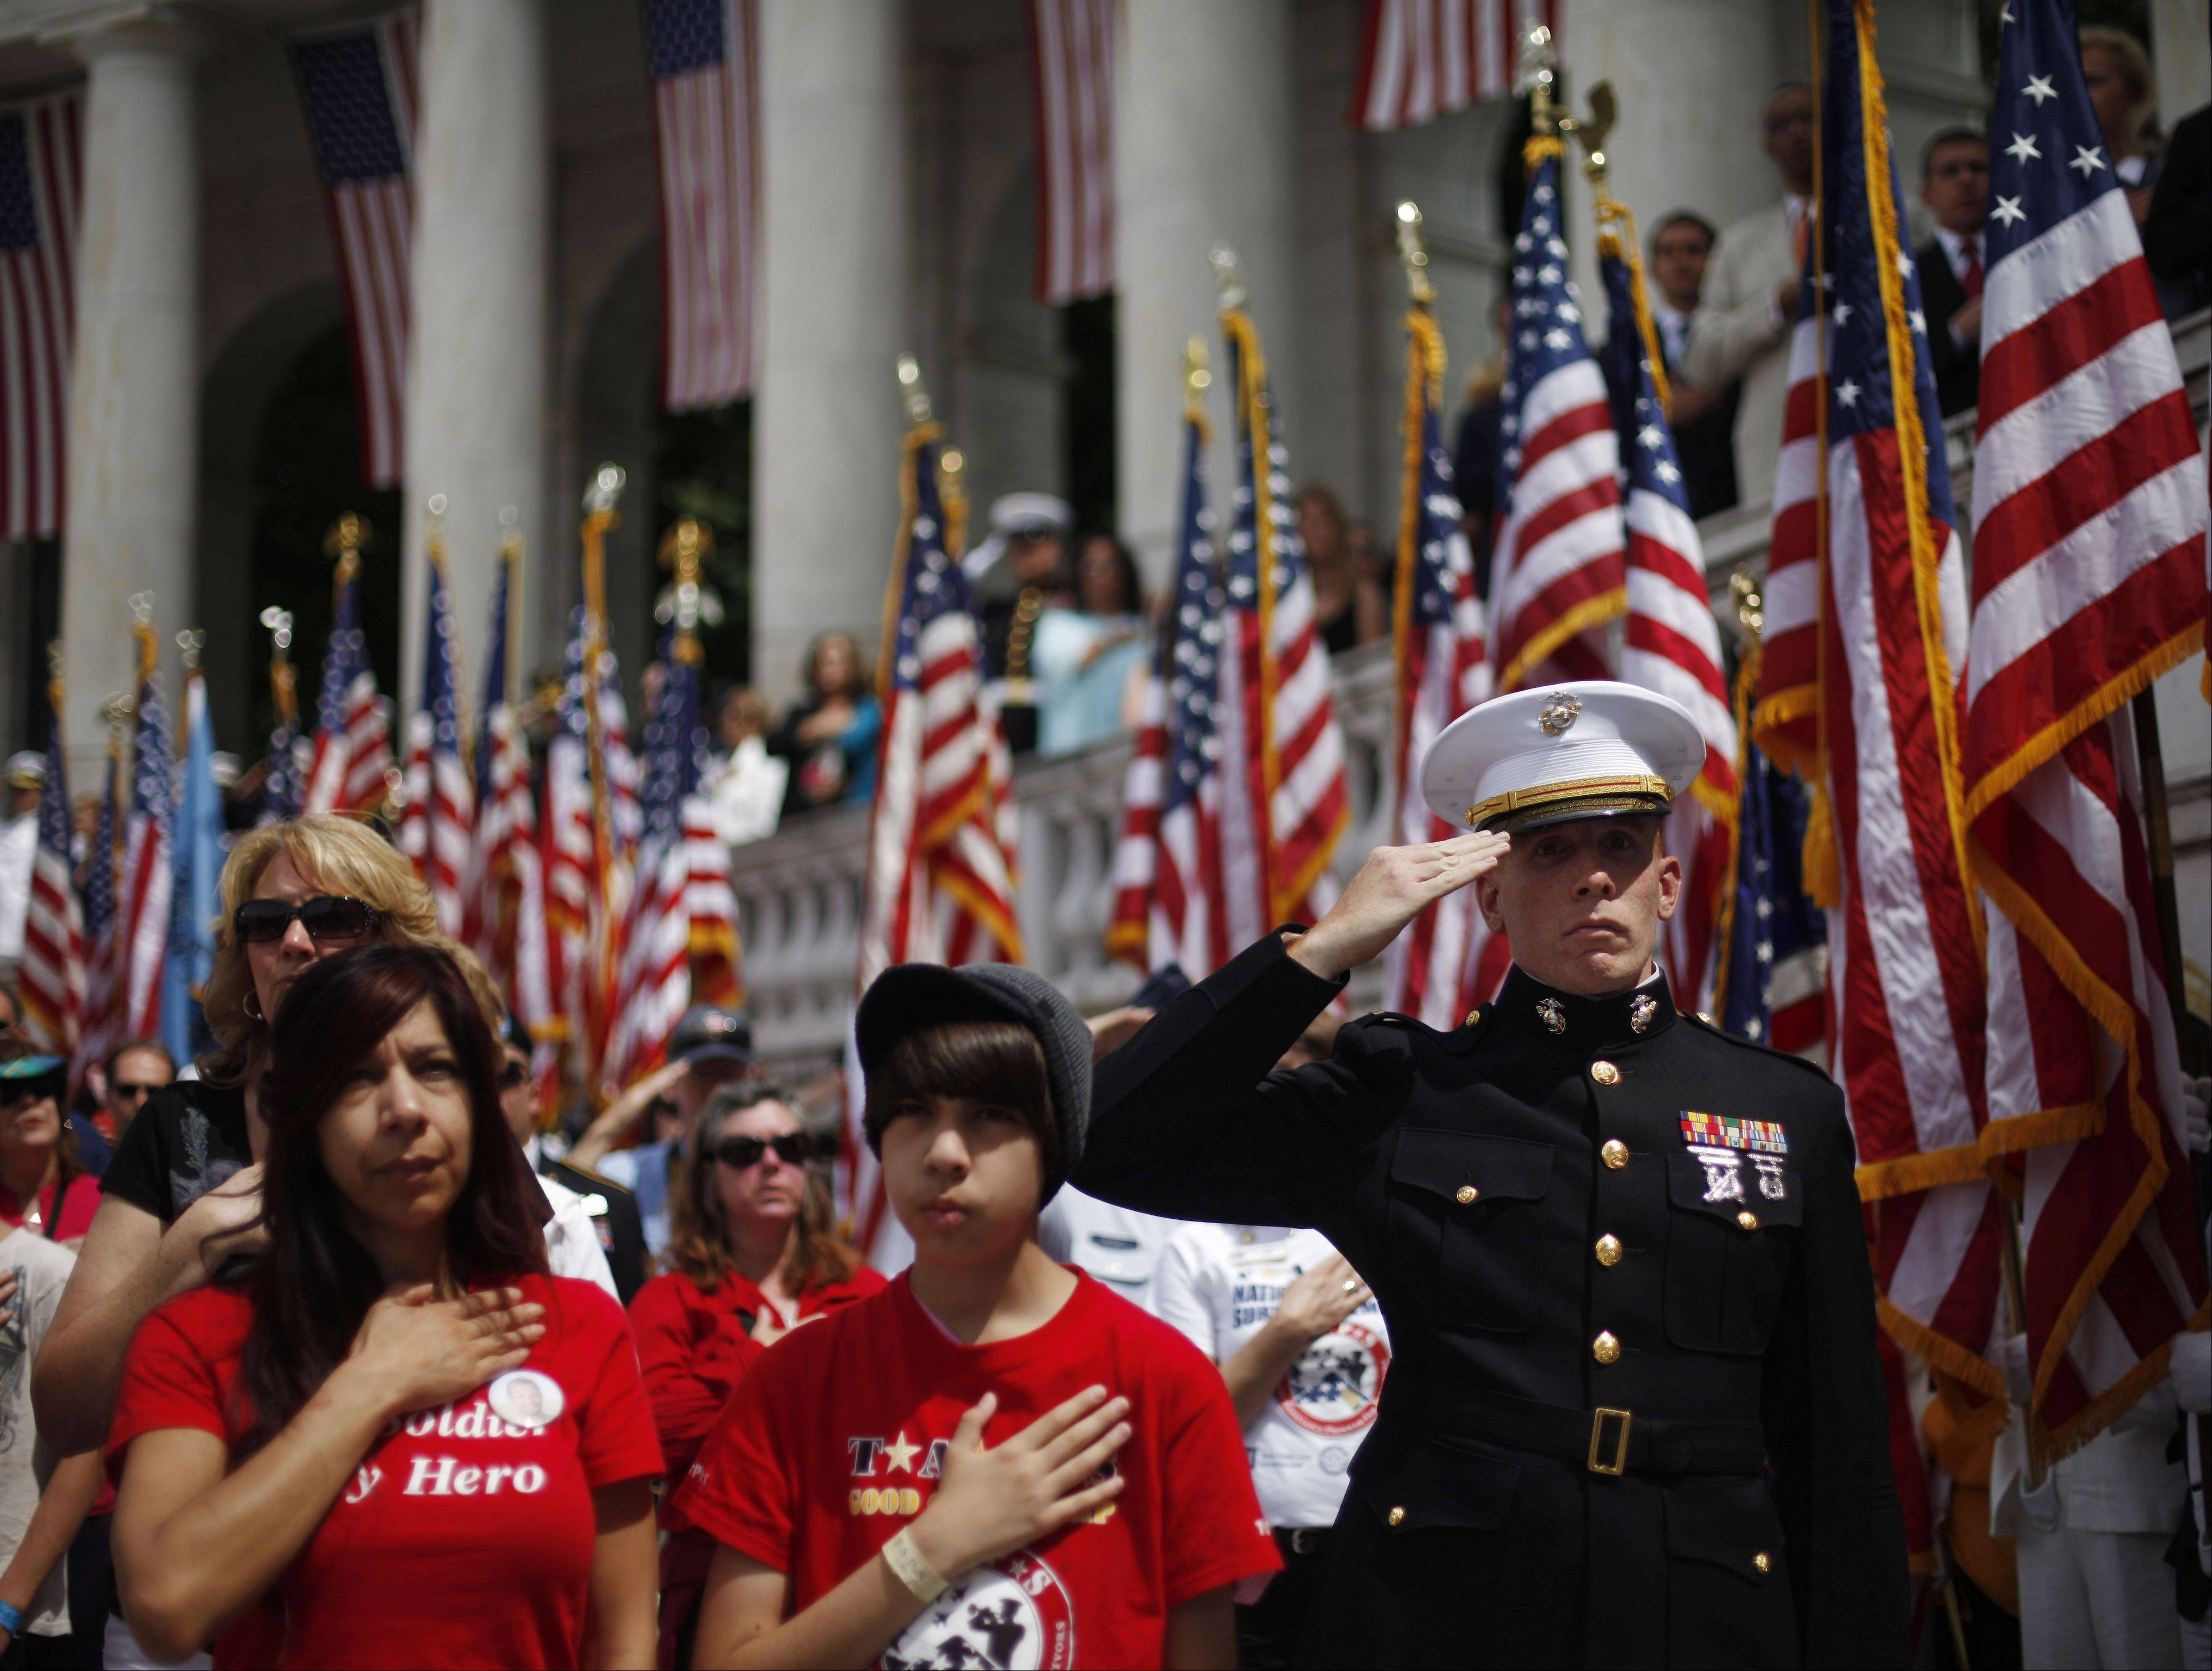 U.S. Marine Corps, 2nd Lt. Adam Carroll, right, with Maria Thomas, left, and Craig Thomas, center, salute and hold hands to their hearts during the playing of the national anthem at the Memorial Day Observance in the Memorial Amphitheater at Arlington National Cemetery, May 27, 2013, in Arlington, Va.